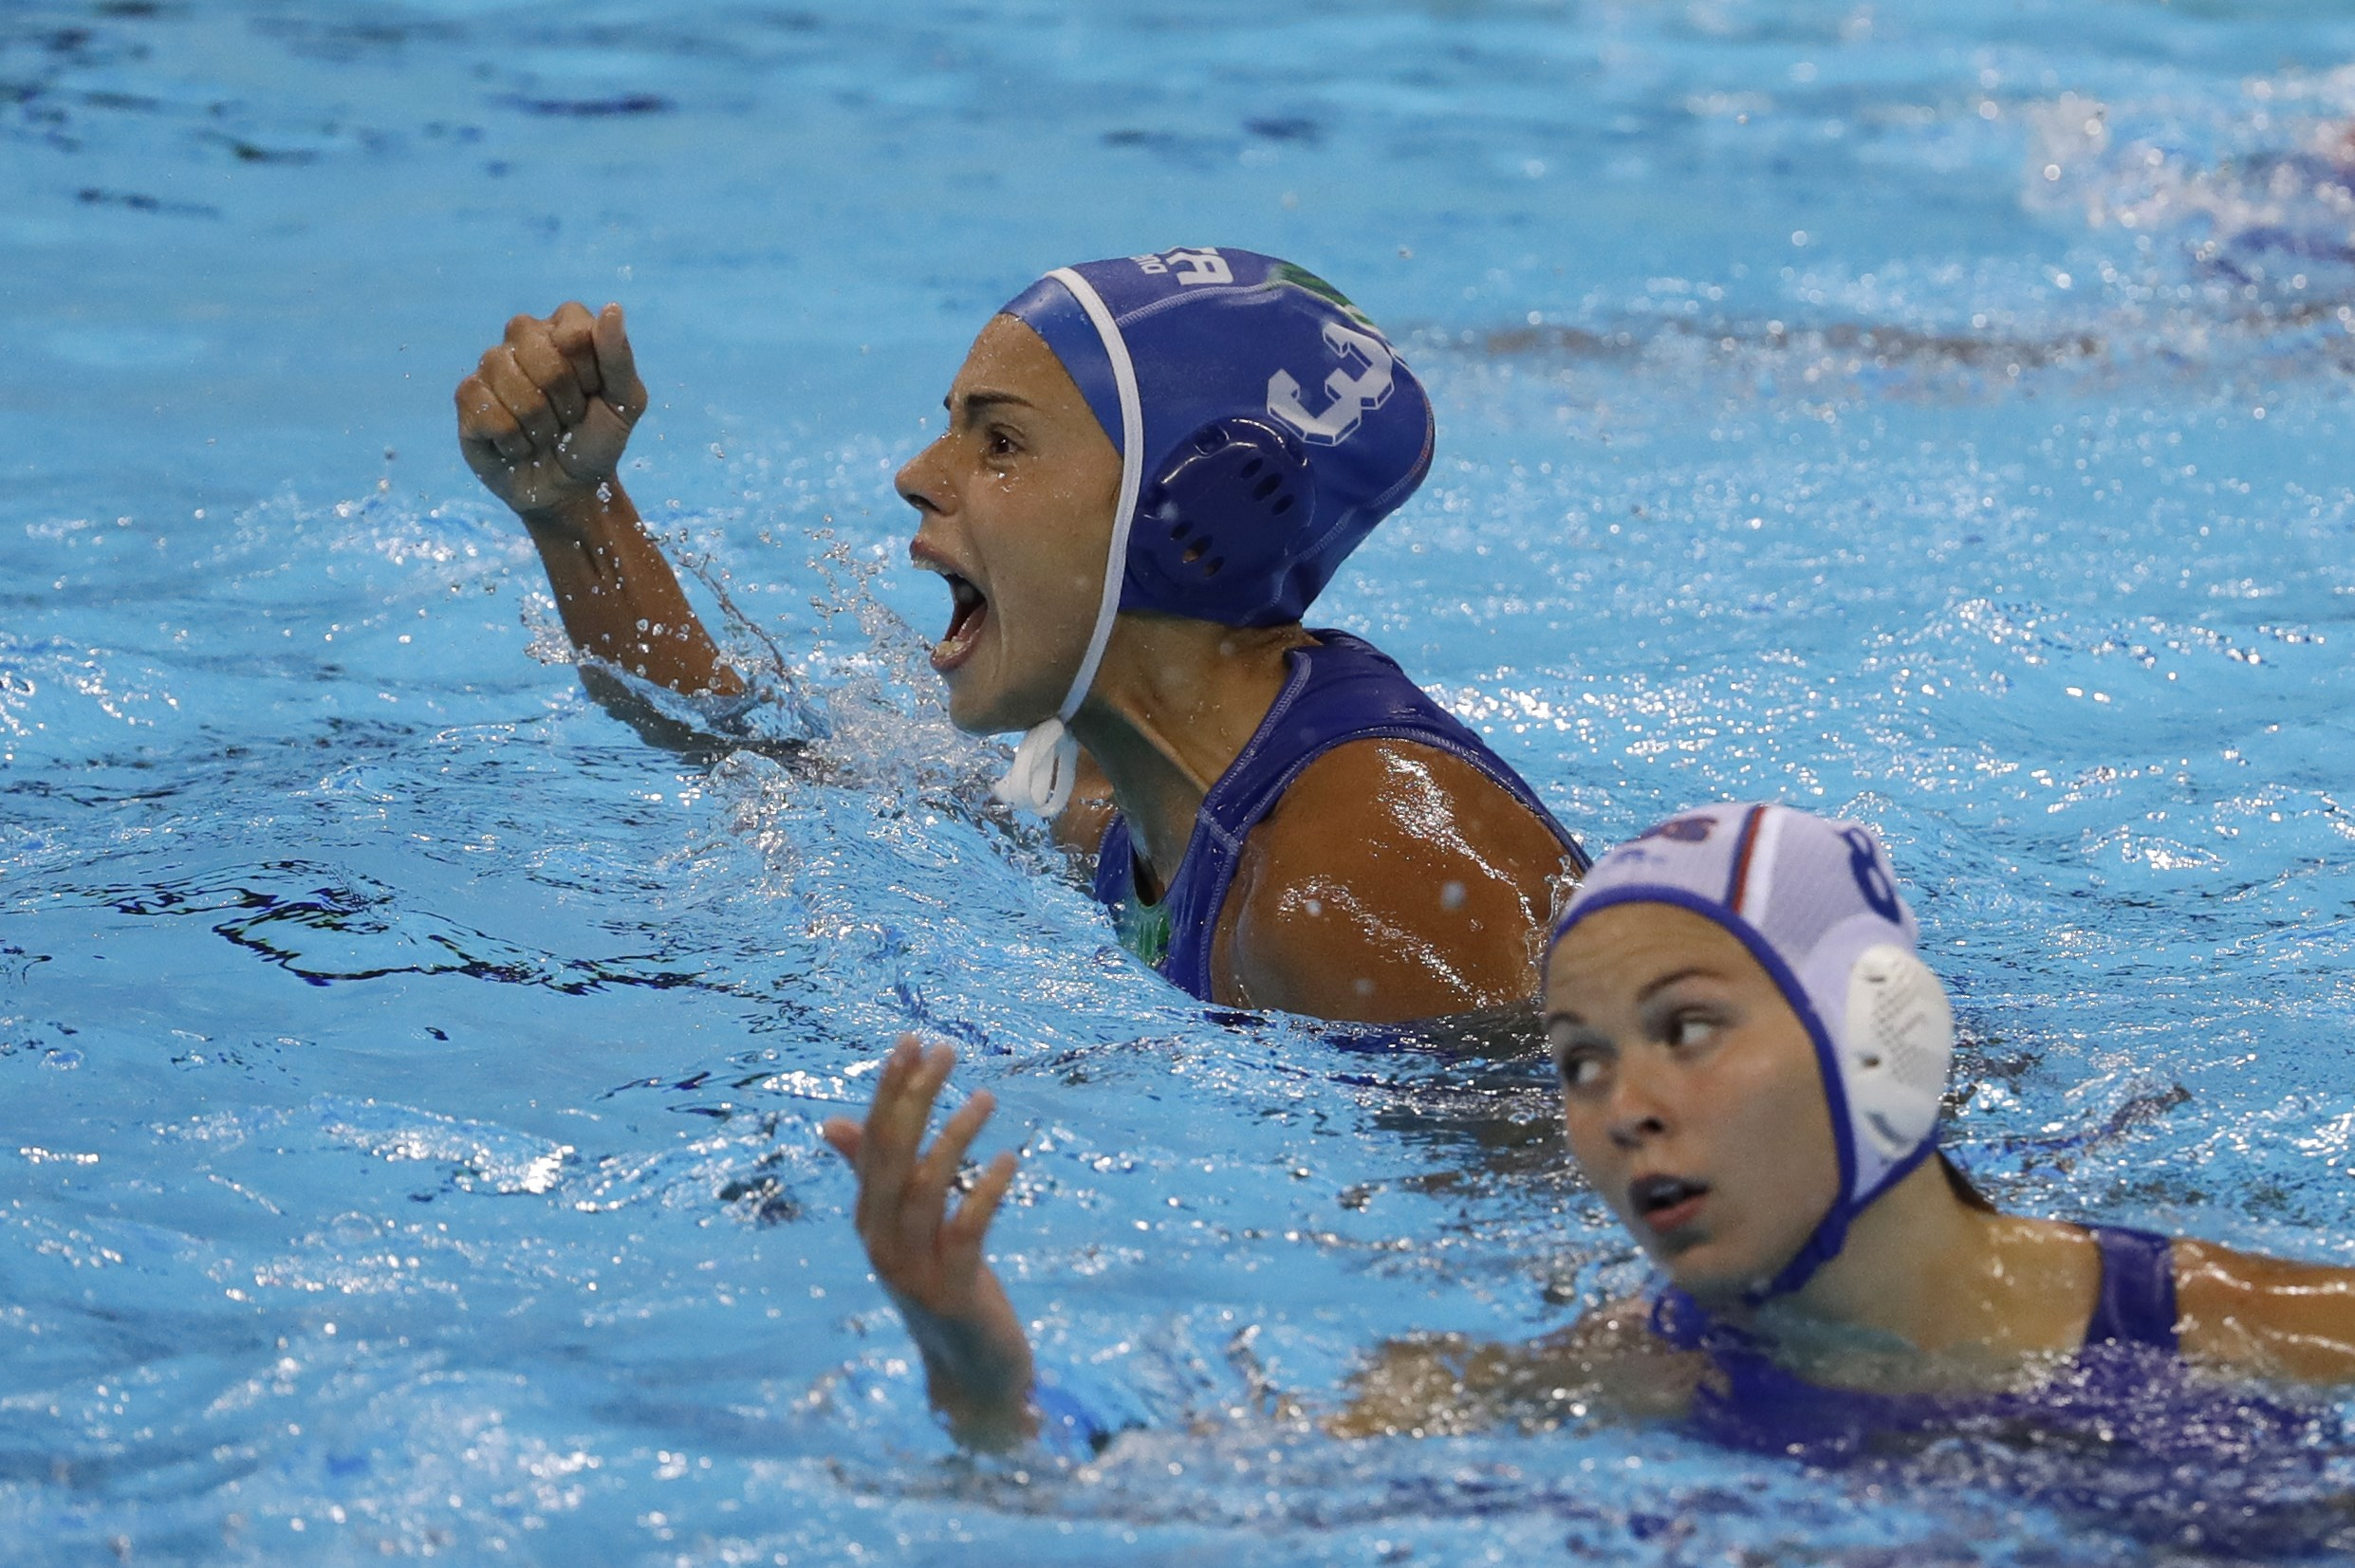 Italy's Arianna Garibotti , reacts after scored a goal against Russia during their women's semifinal water polo match at the 2016 Summer Olympics in Rio de Janeiro, Brazil, Wednesday, Aug. 17, 2016. (AP Photo/Eduardo Verdugo)